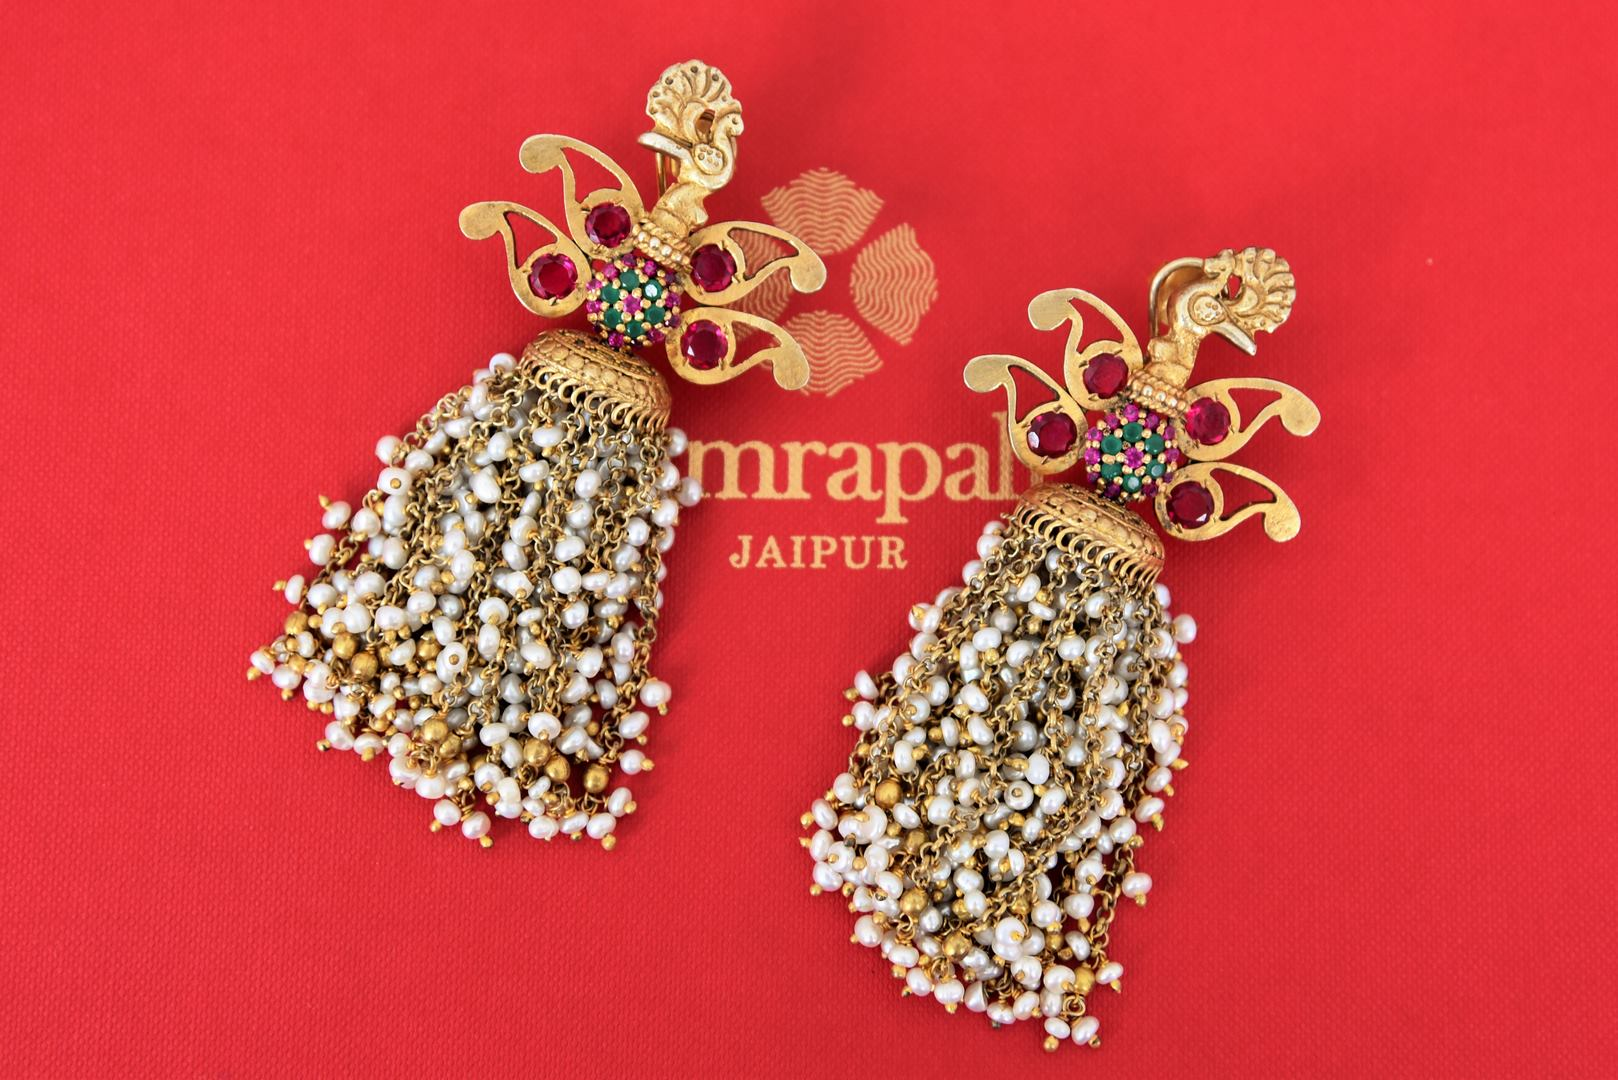 20C018 Silver Gold Plated Glass Peacock Earrings with Pearl Tassels